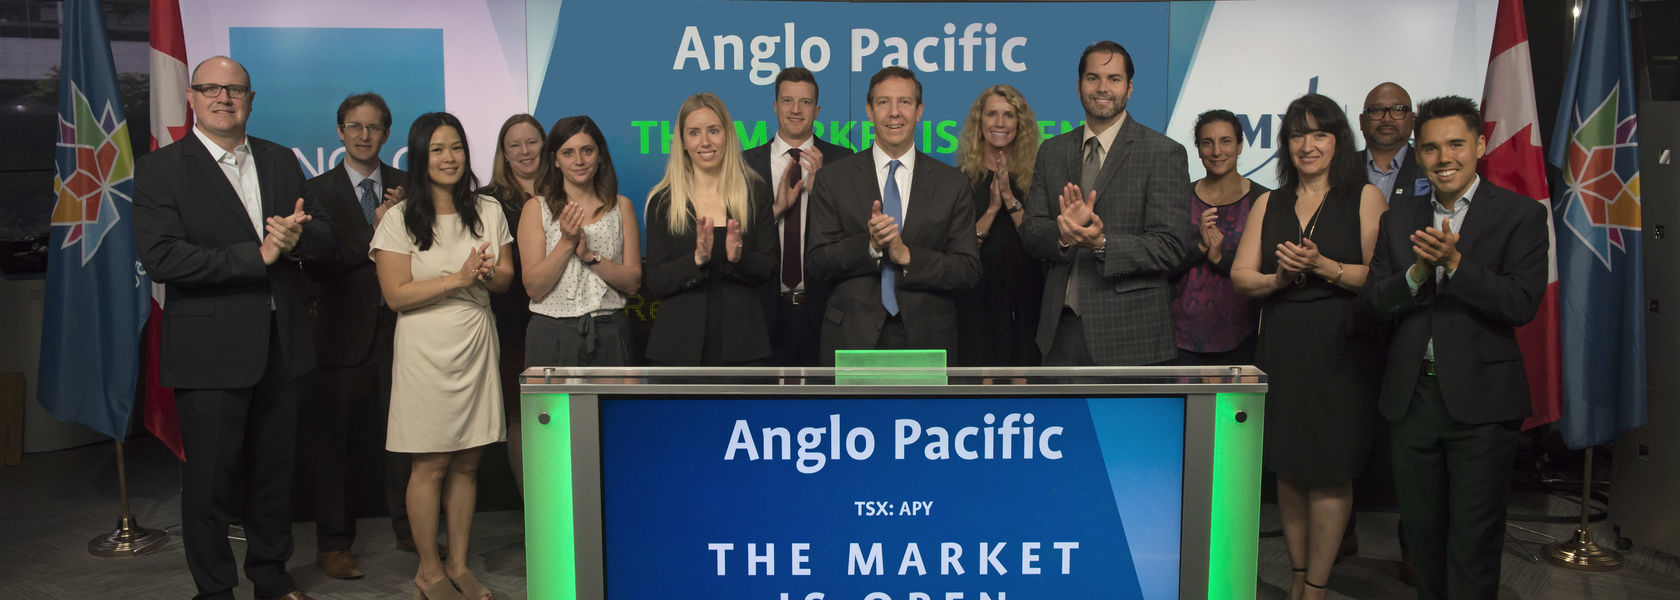 Anglo Pacific aims for growth with board hire